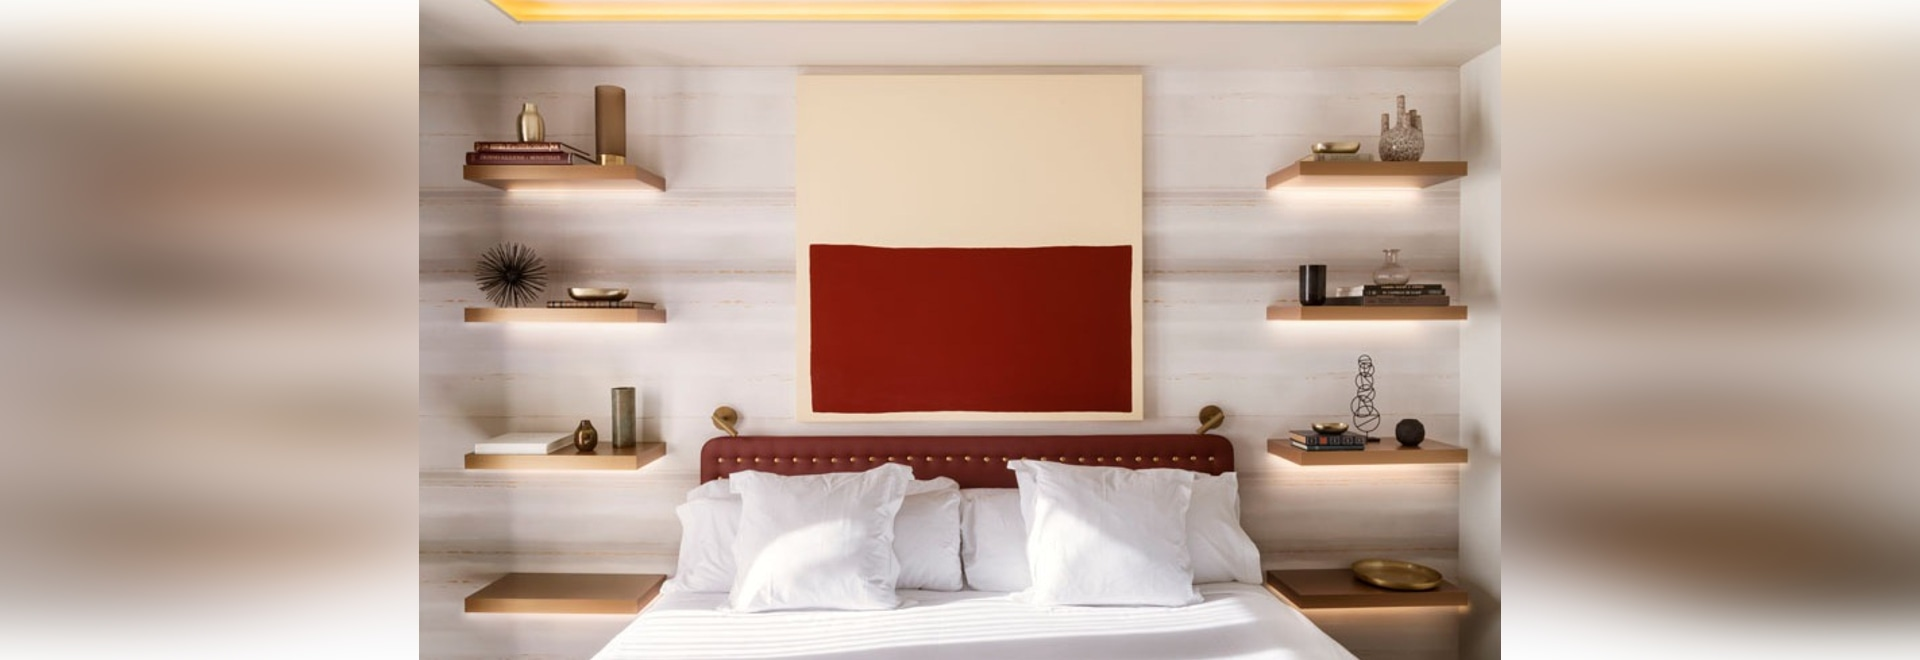 Bedroom Design Idea Replace A Bedside Table And Lamp With Floating Shelves And Hidden Lighting Barcelona Spain